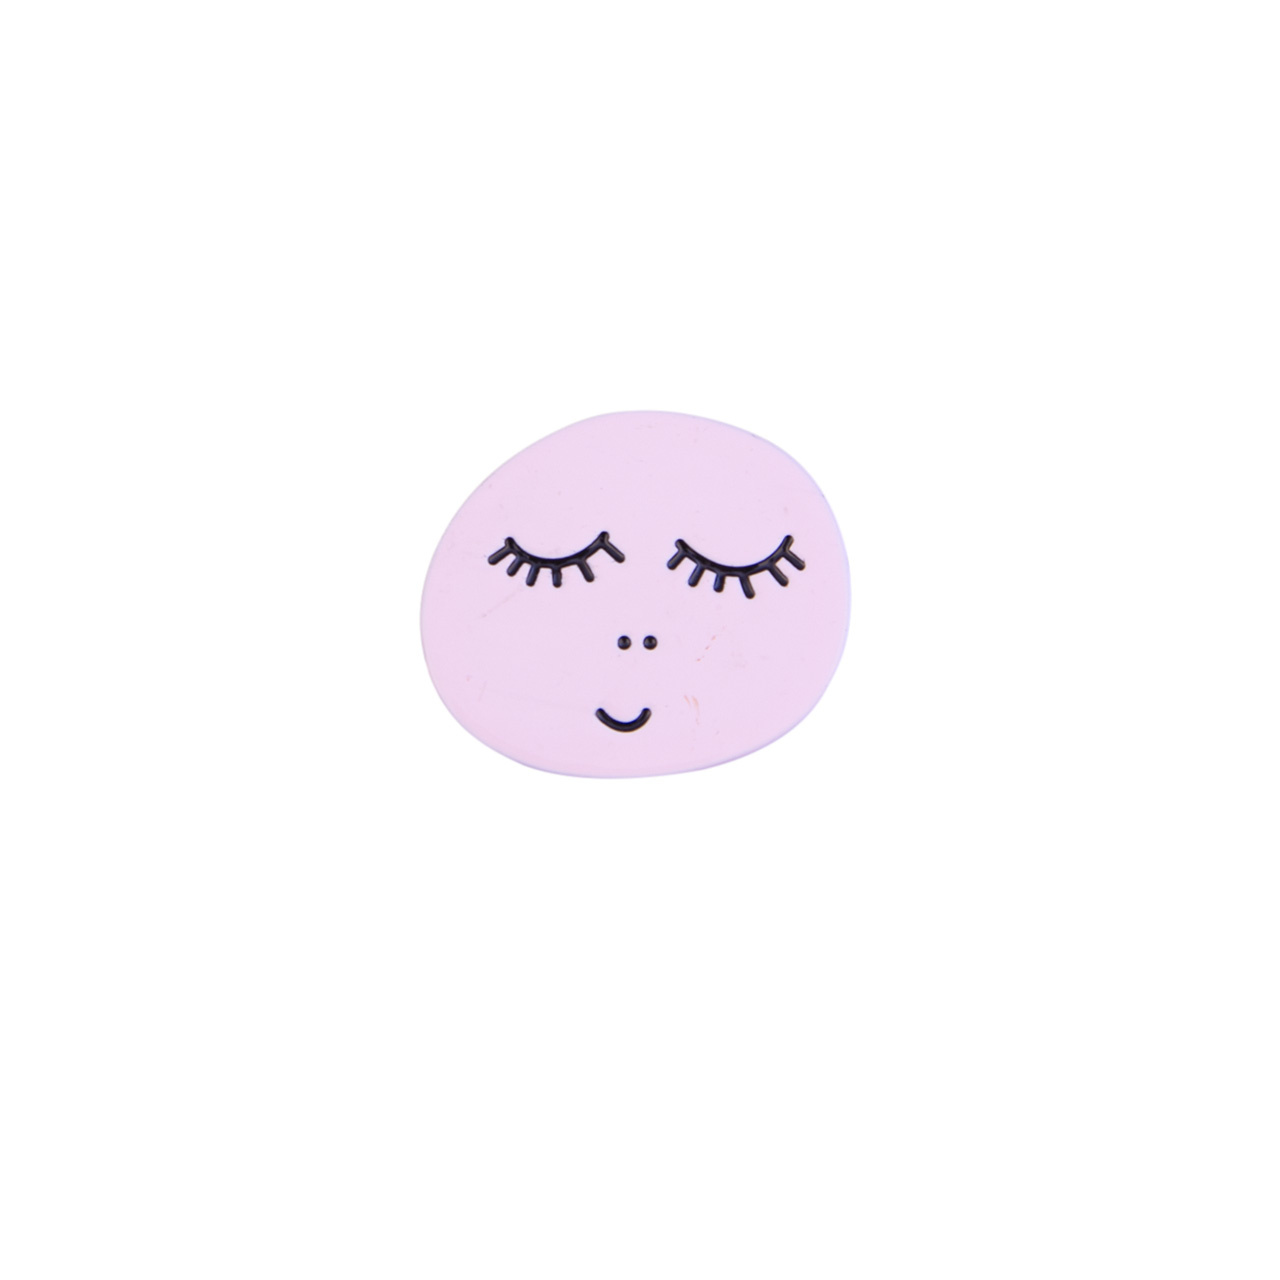 Pins-Faces-Assorted For sale per piece